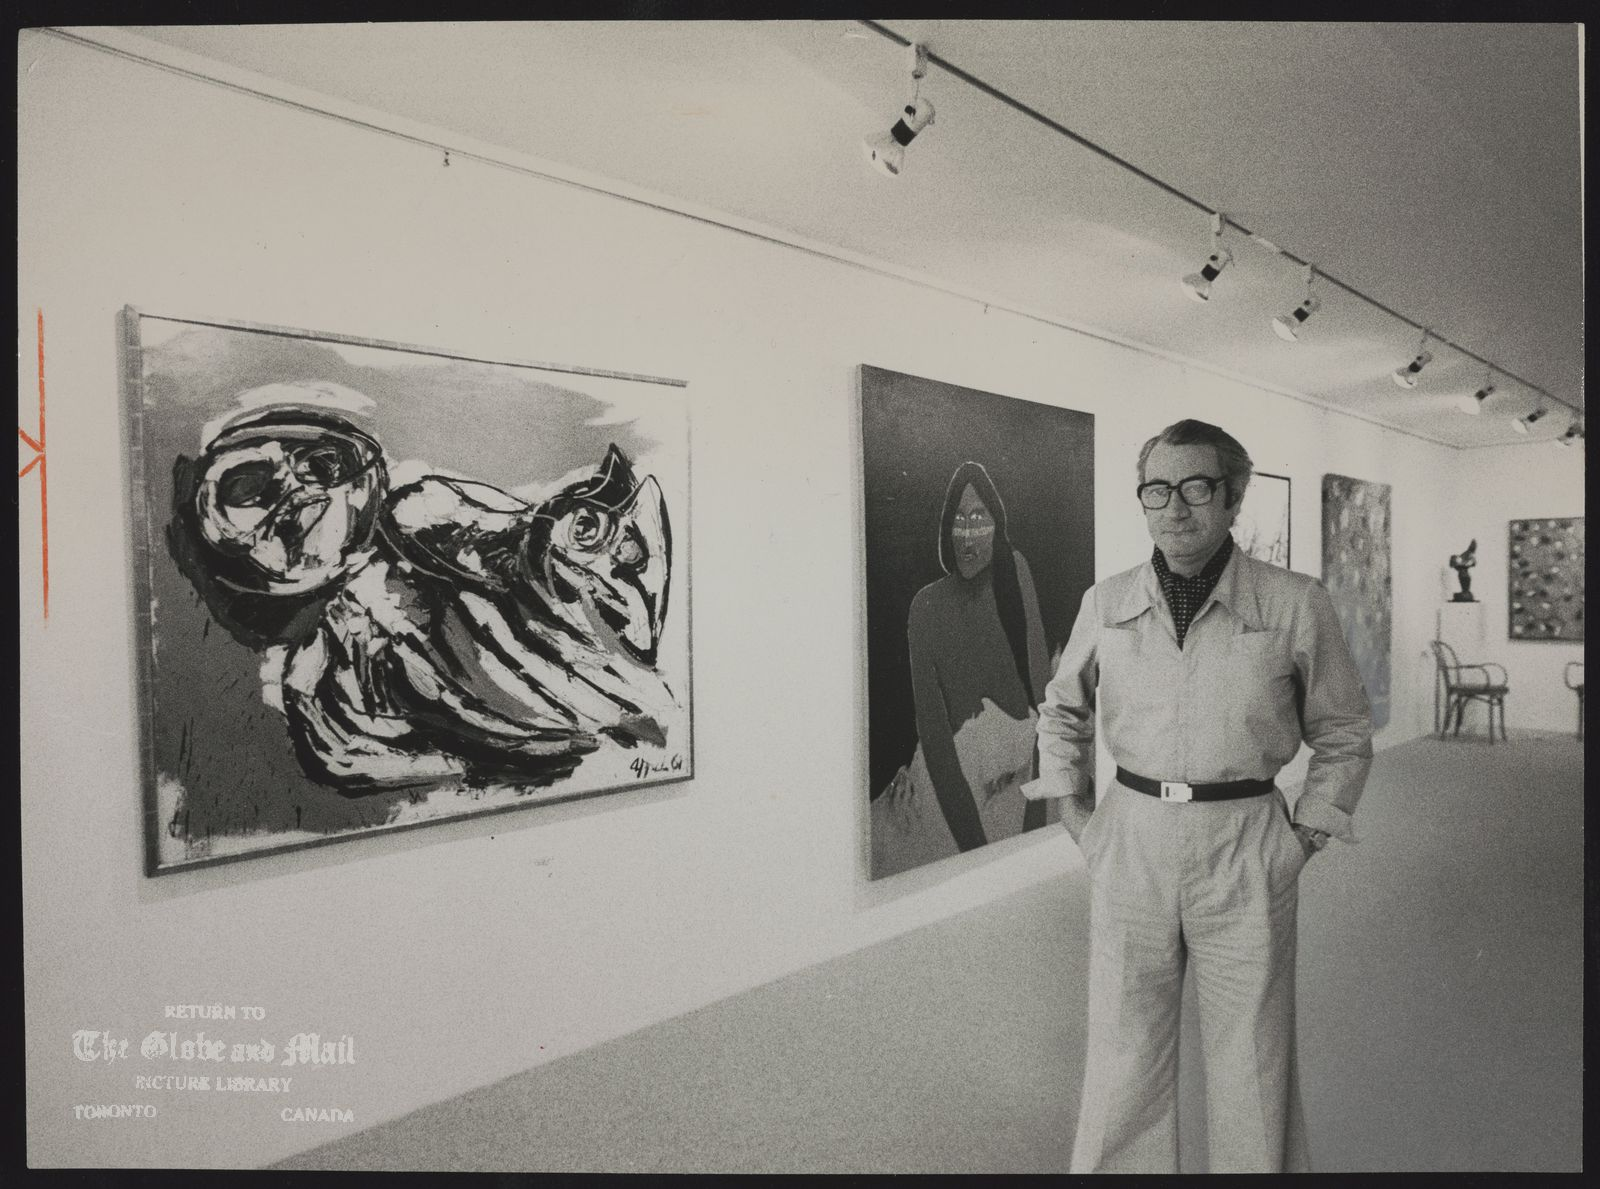 MOOS GALLERY Walter Moos savors hs 2600 square feet, flanked to the left by Karel Appel's Chinese Woman and Cat.